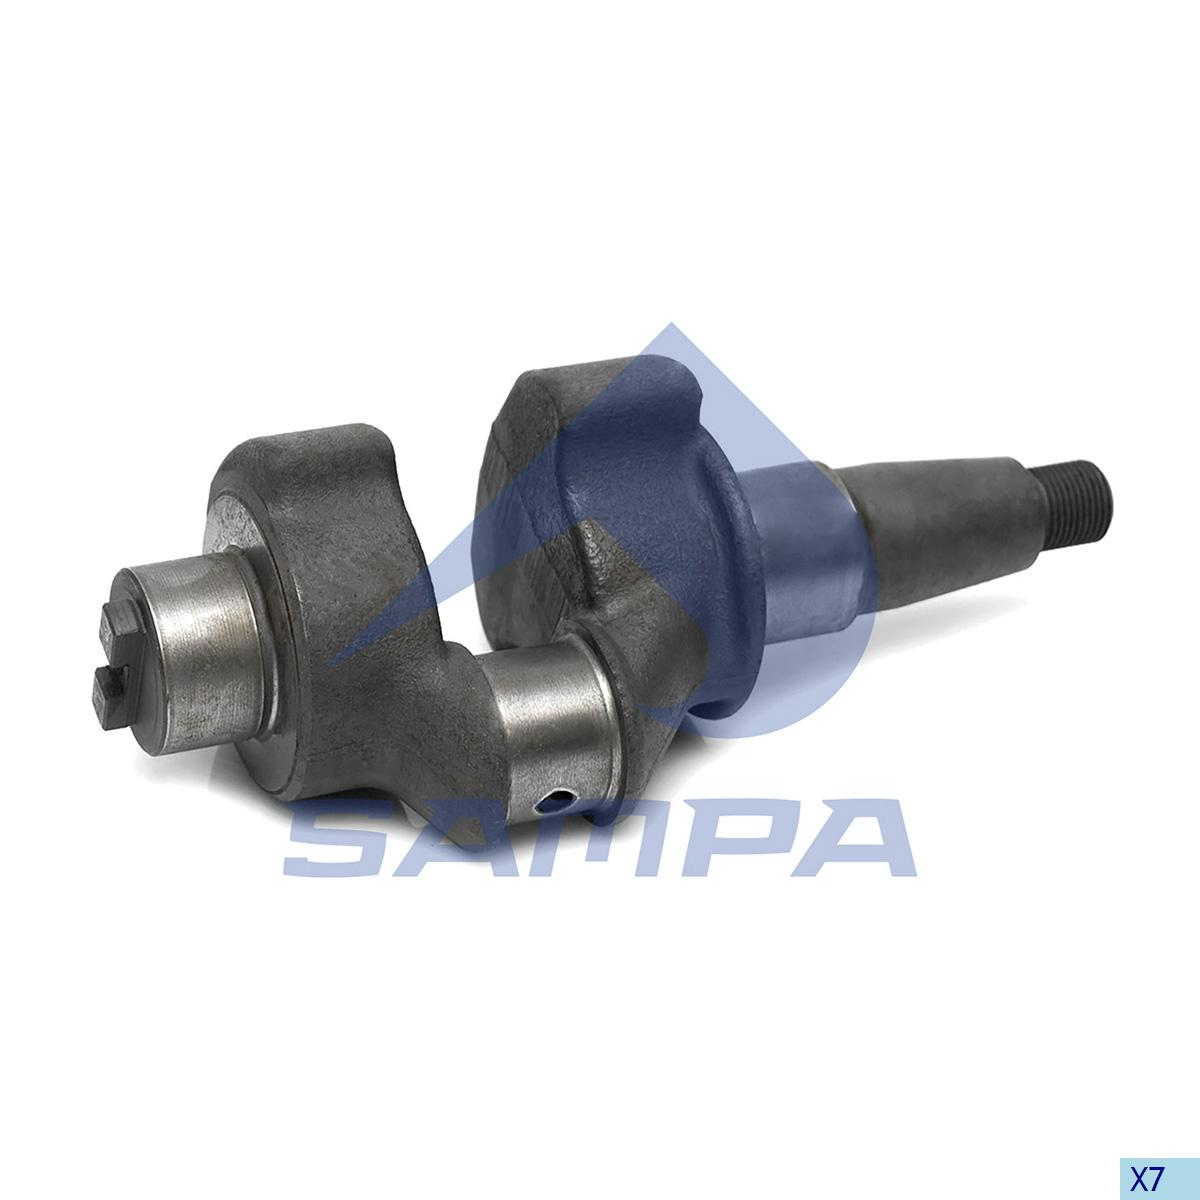 Crank Shaft, Cylinder Block, Iveco, Compressed Air System